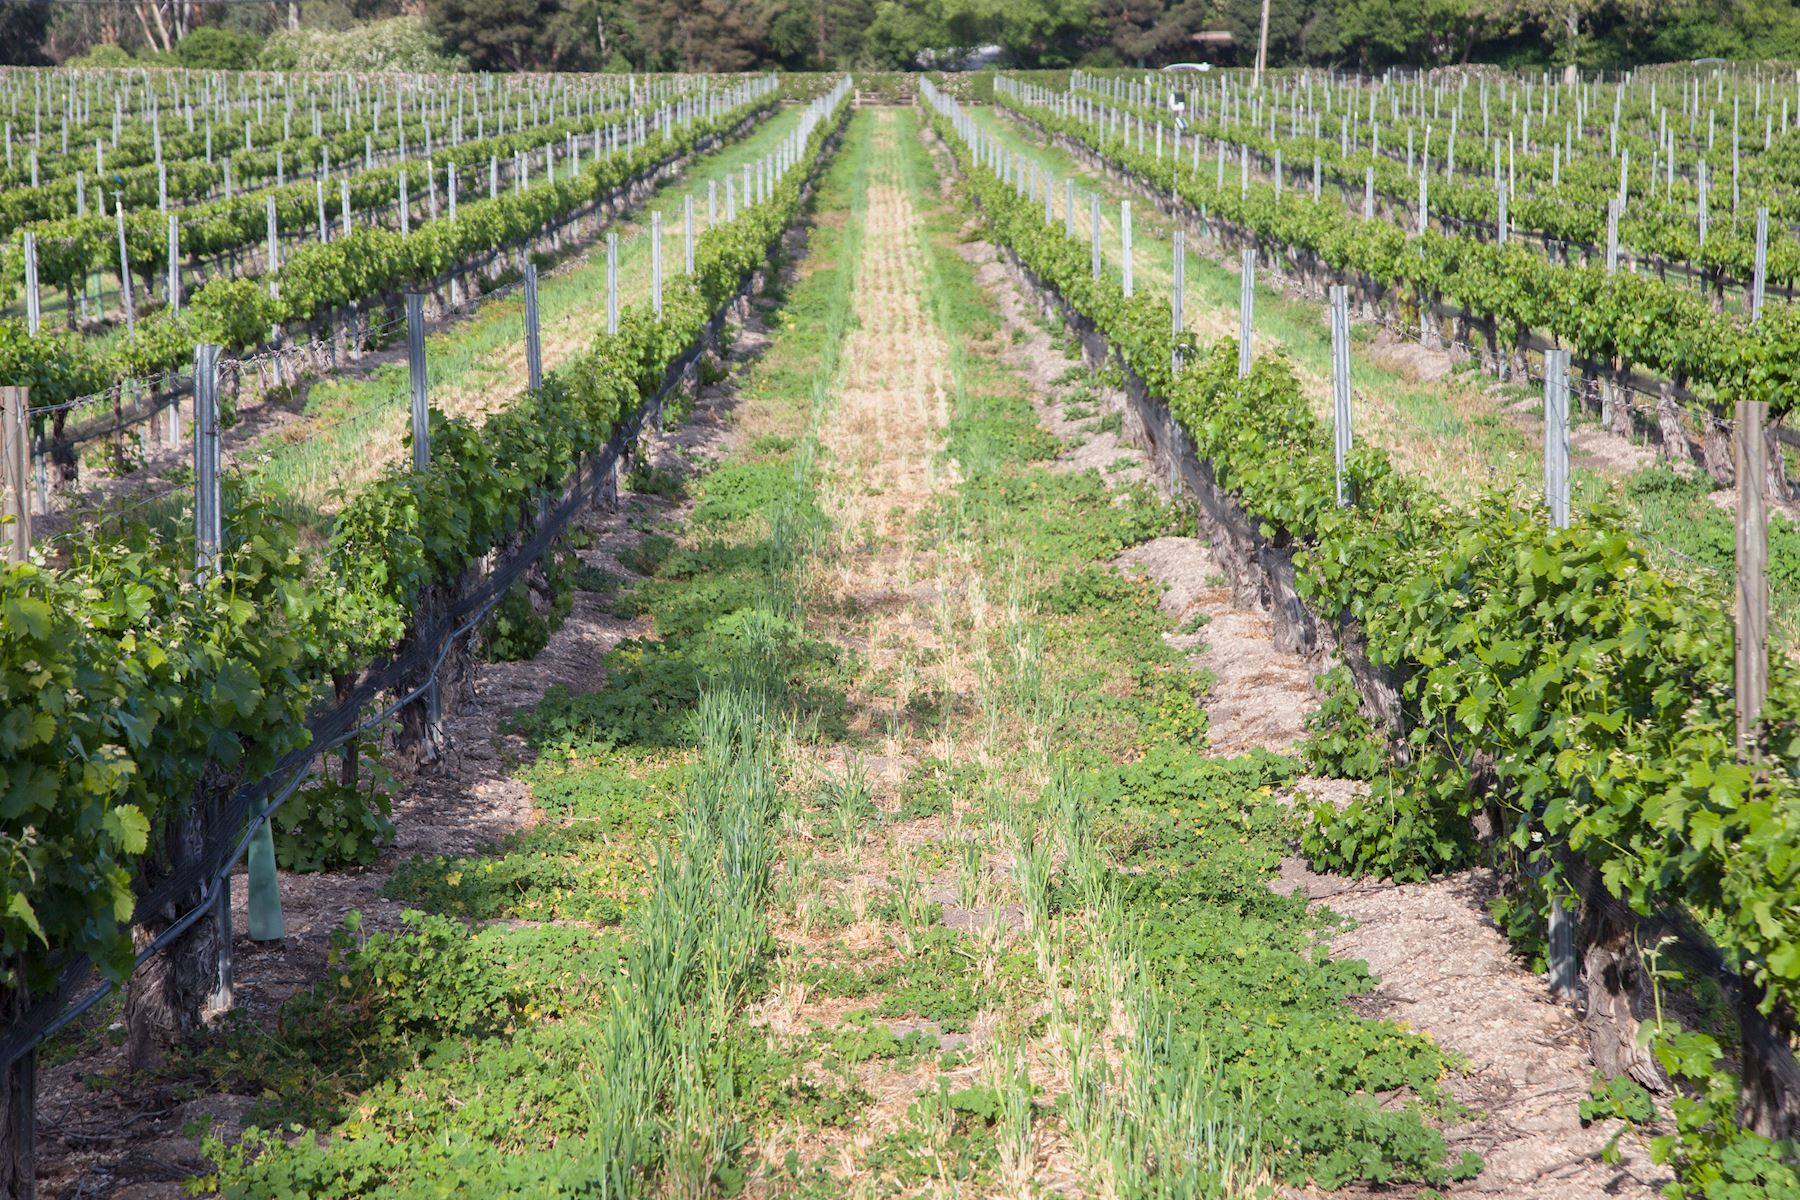 The vines growing at Lincourt Vineyard